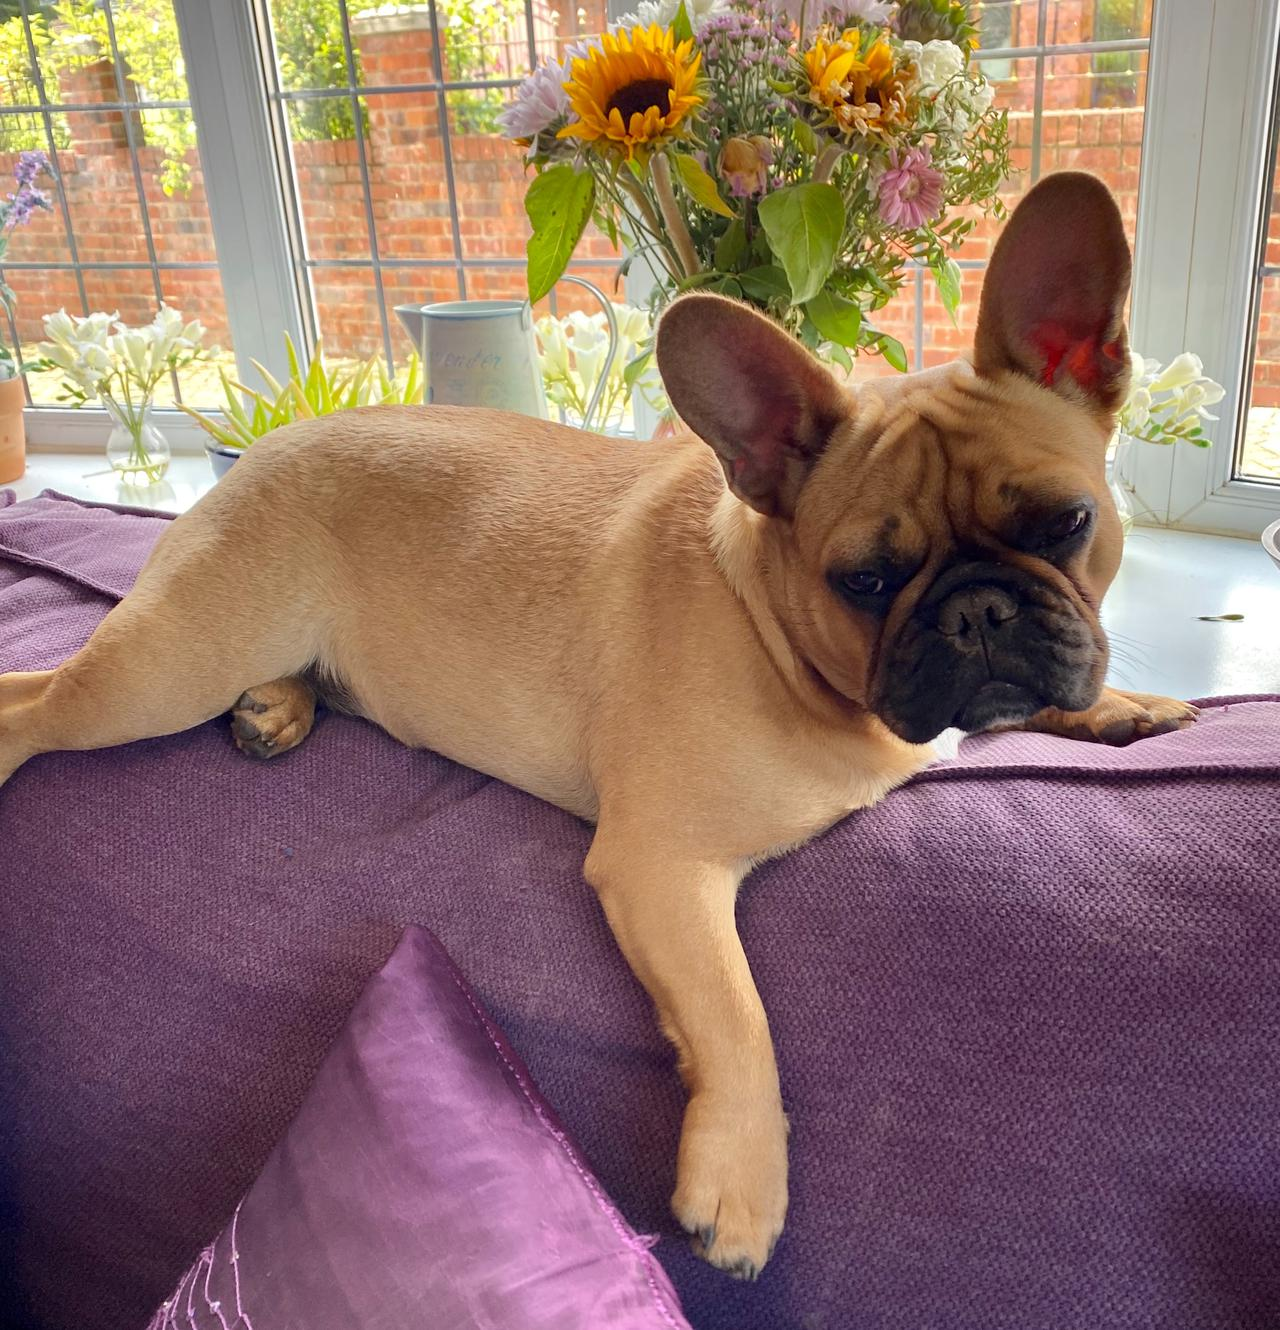 Why should I buy AKC-registered French bulldog puppies?